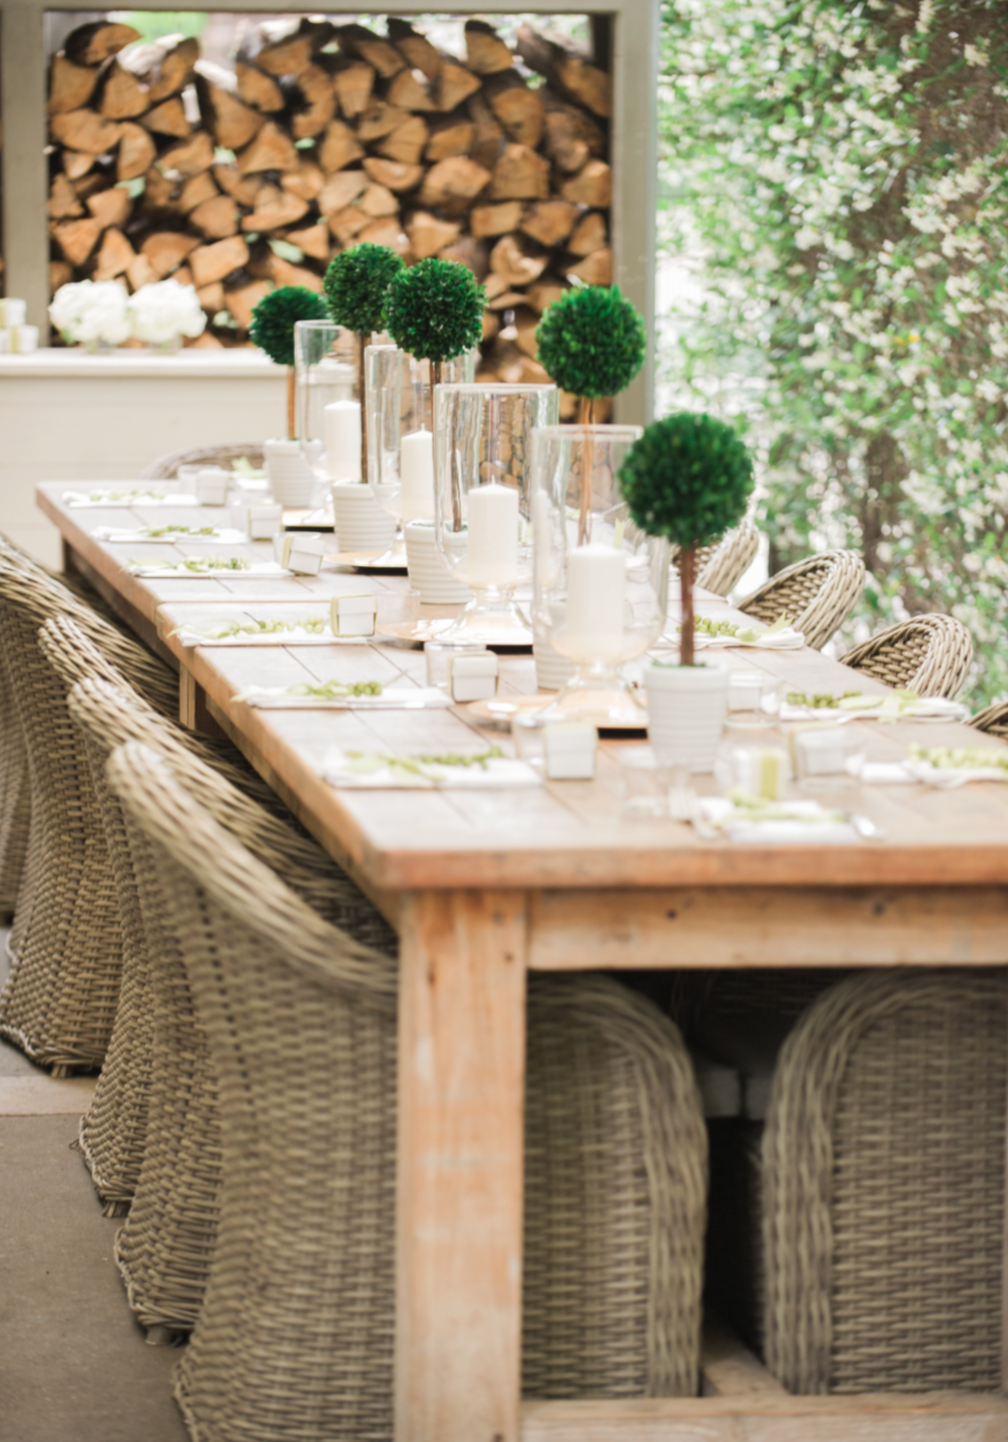 Tablescape with candles on the outdoor pavilion.